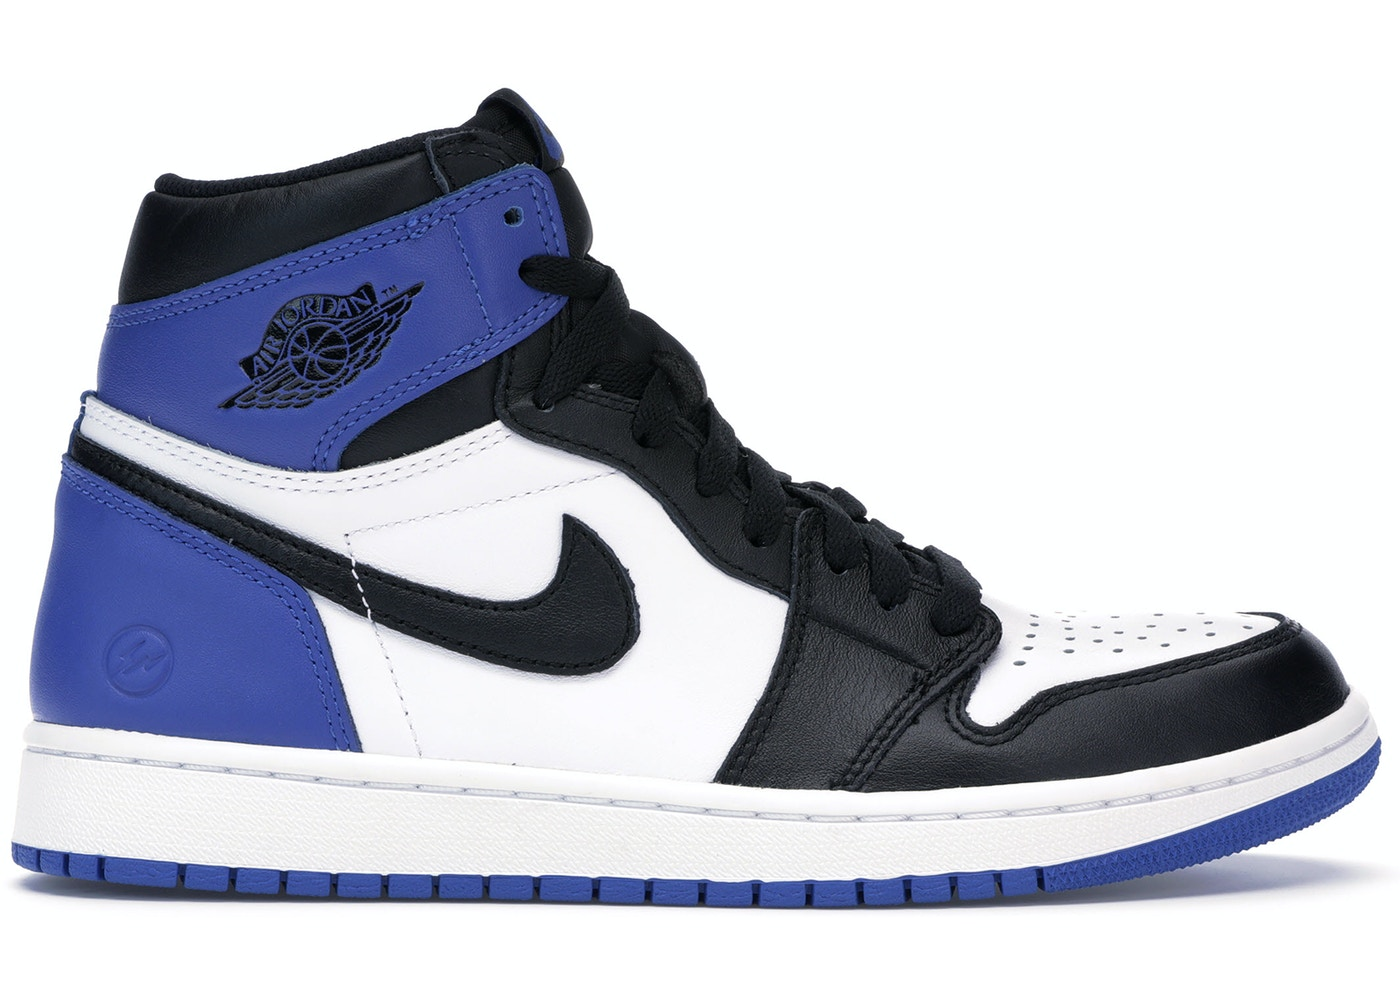 best website 11ffd 54e22 Jordan 1 Retro Fragment - 716371-040